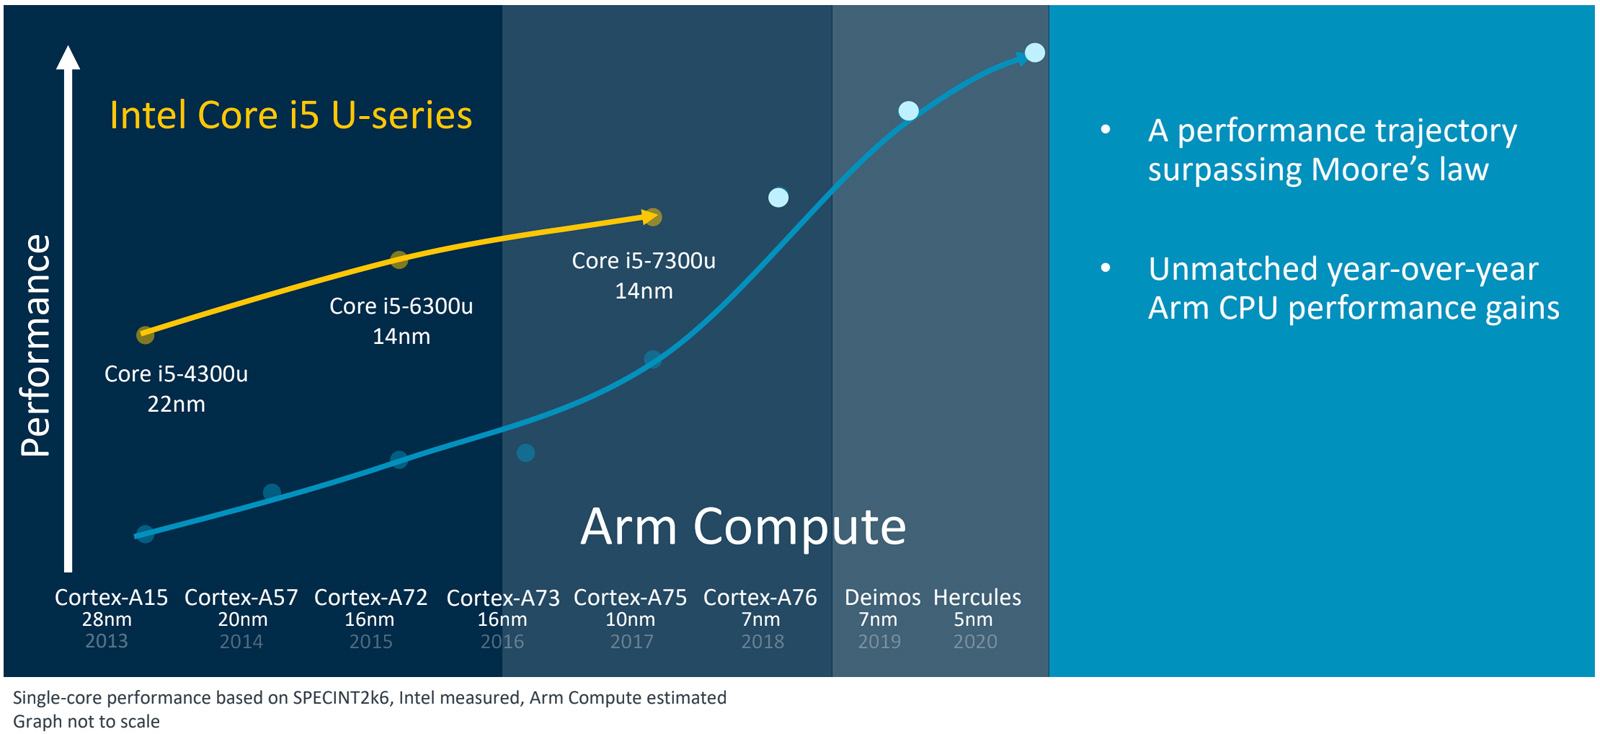 arm-compute-roadmap-2020.jpg